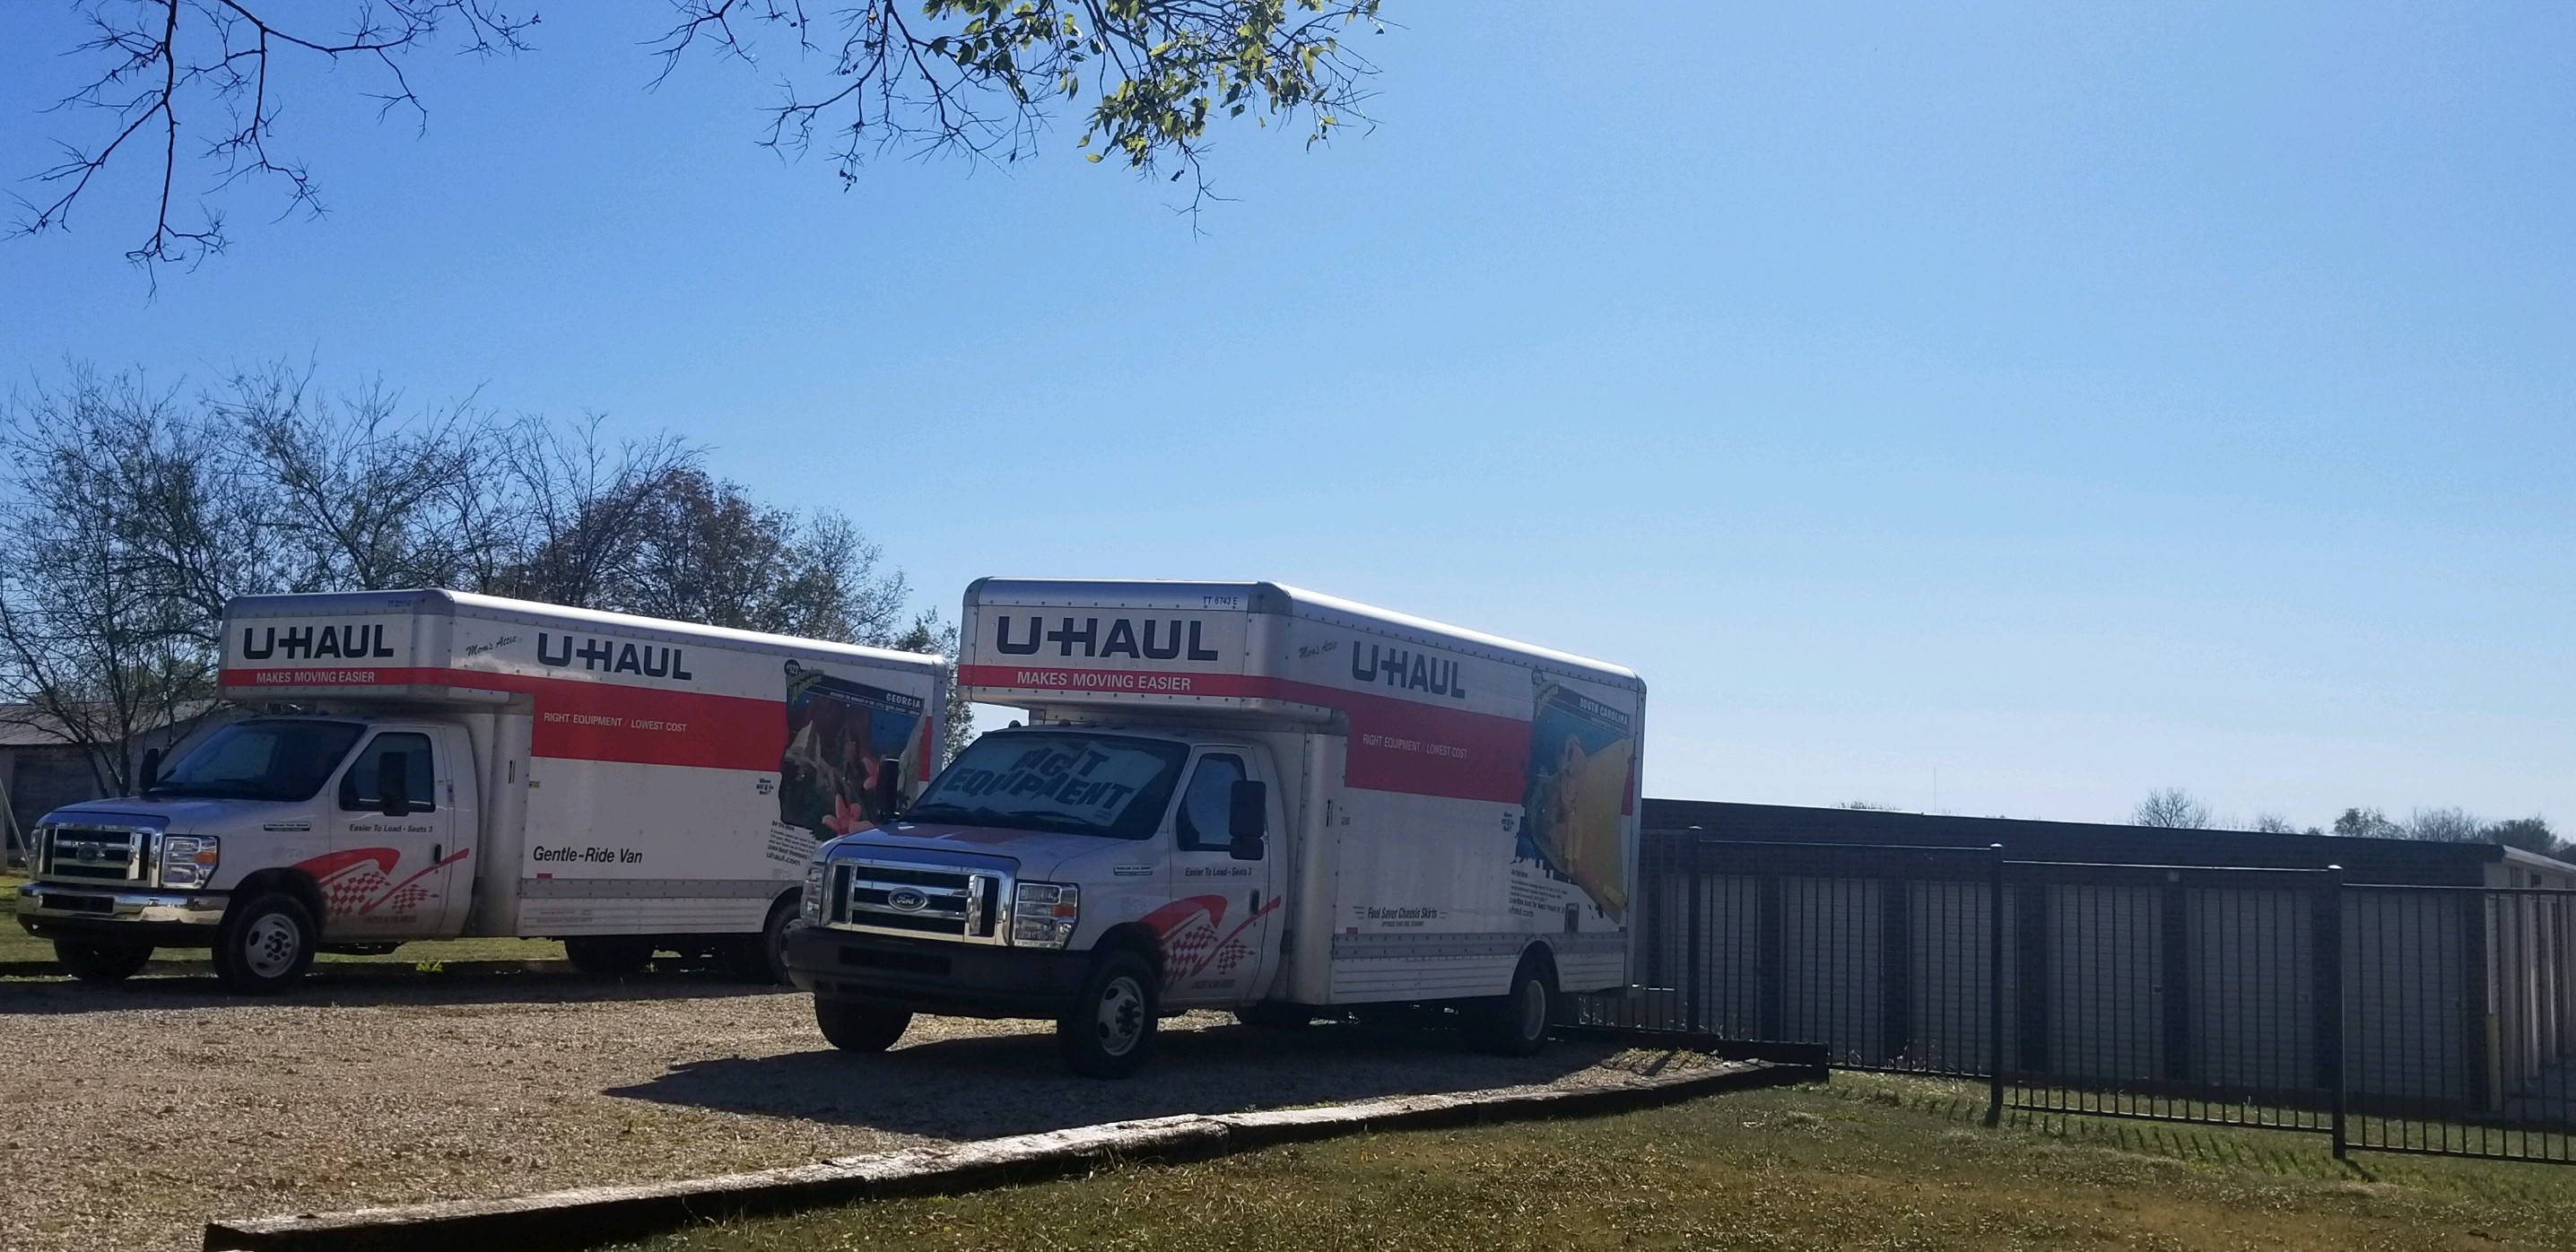 U-Haul moving trucks parked outside near outdoor storage units